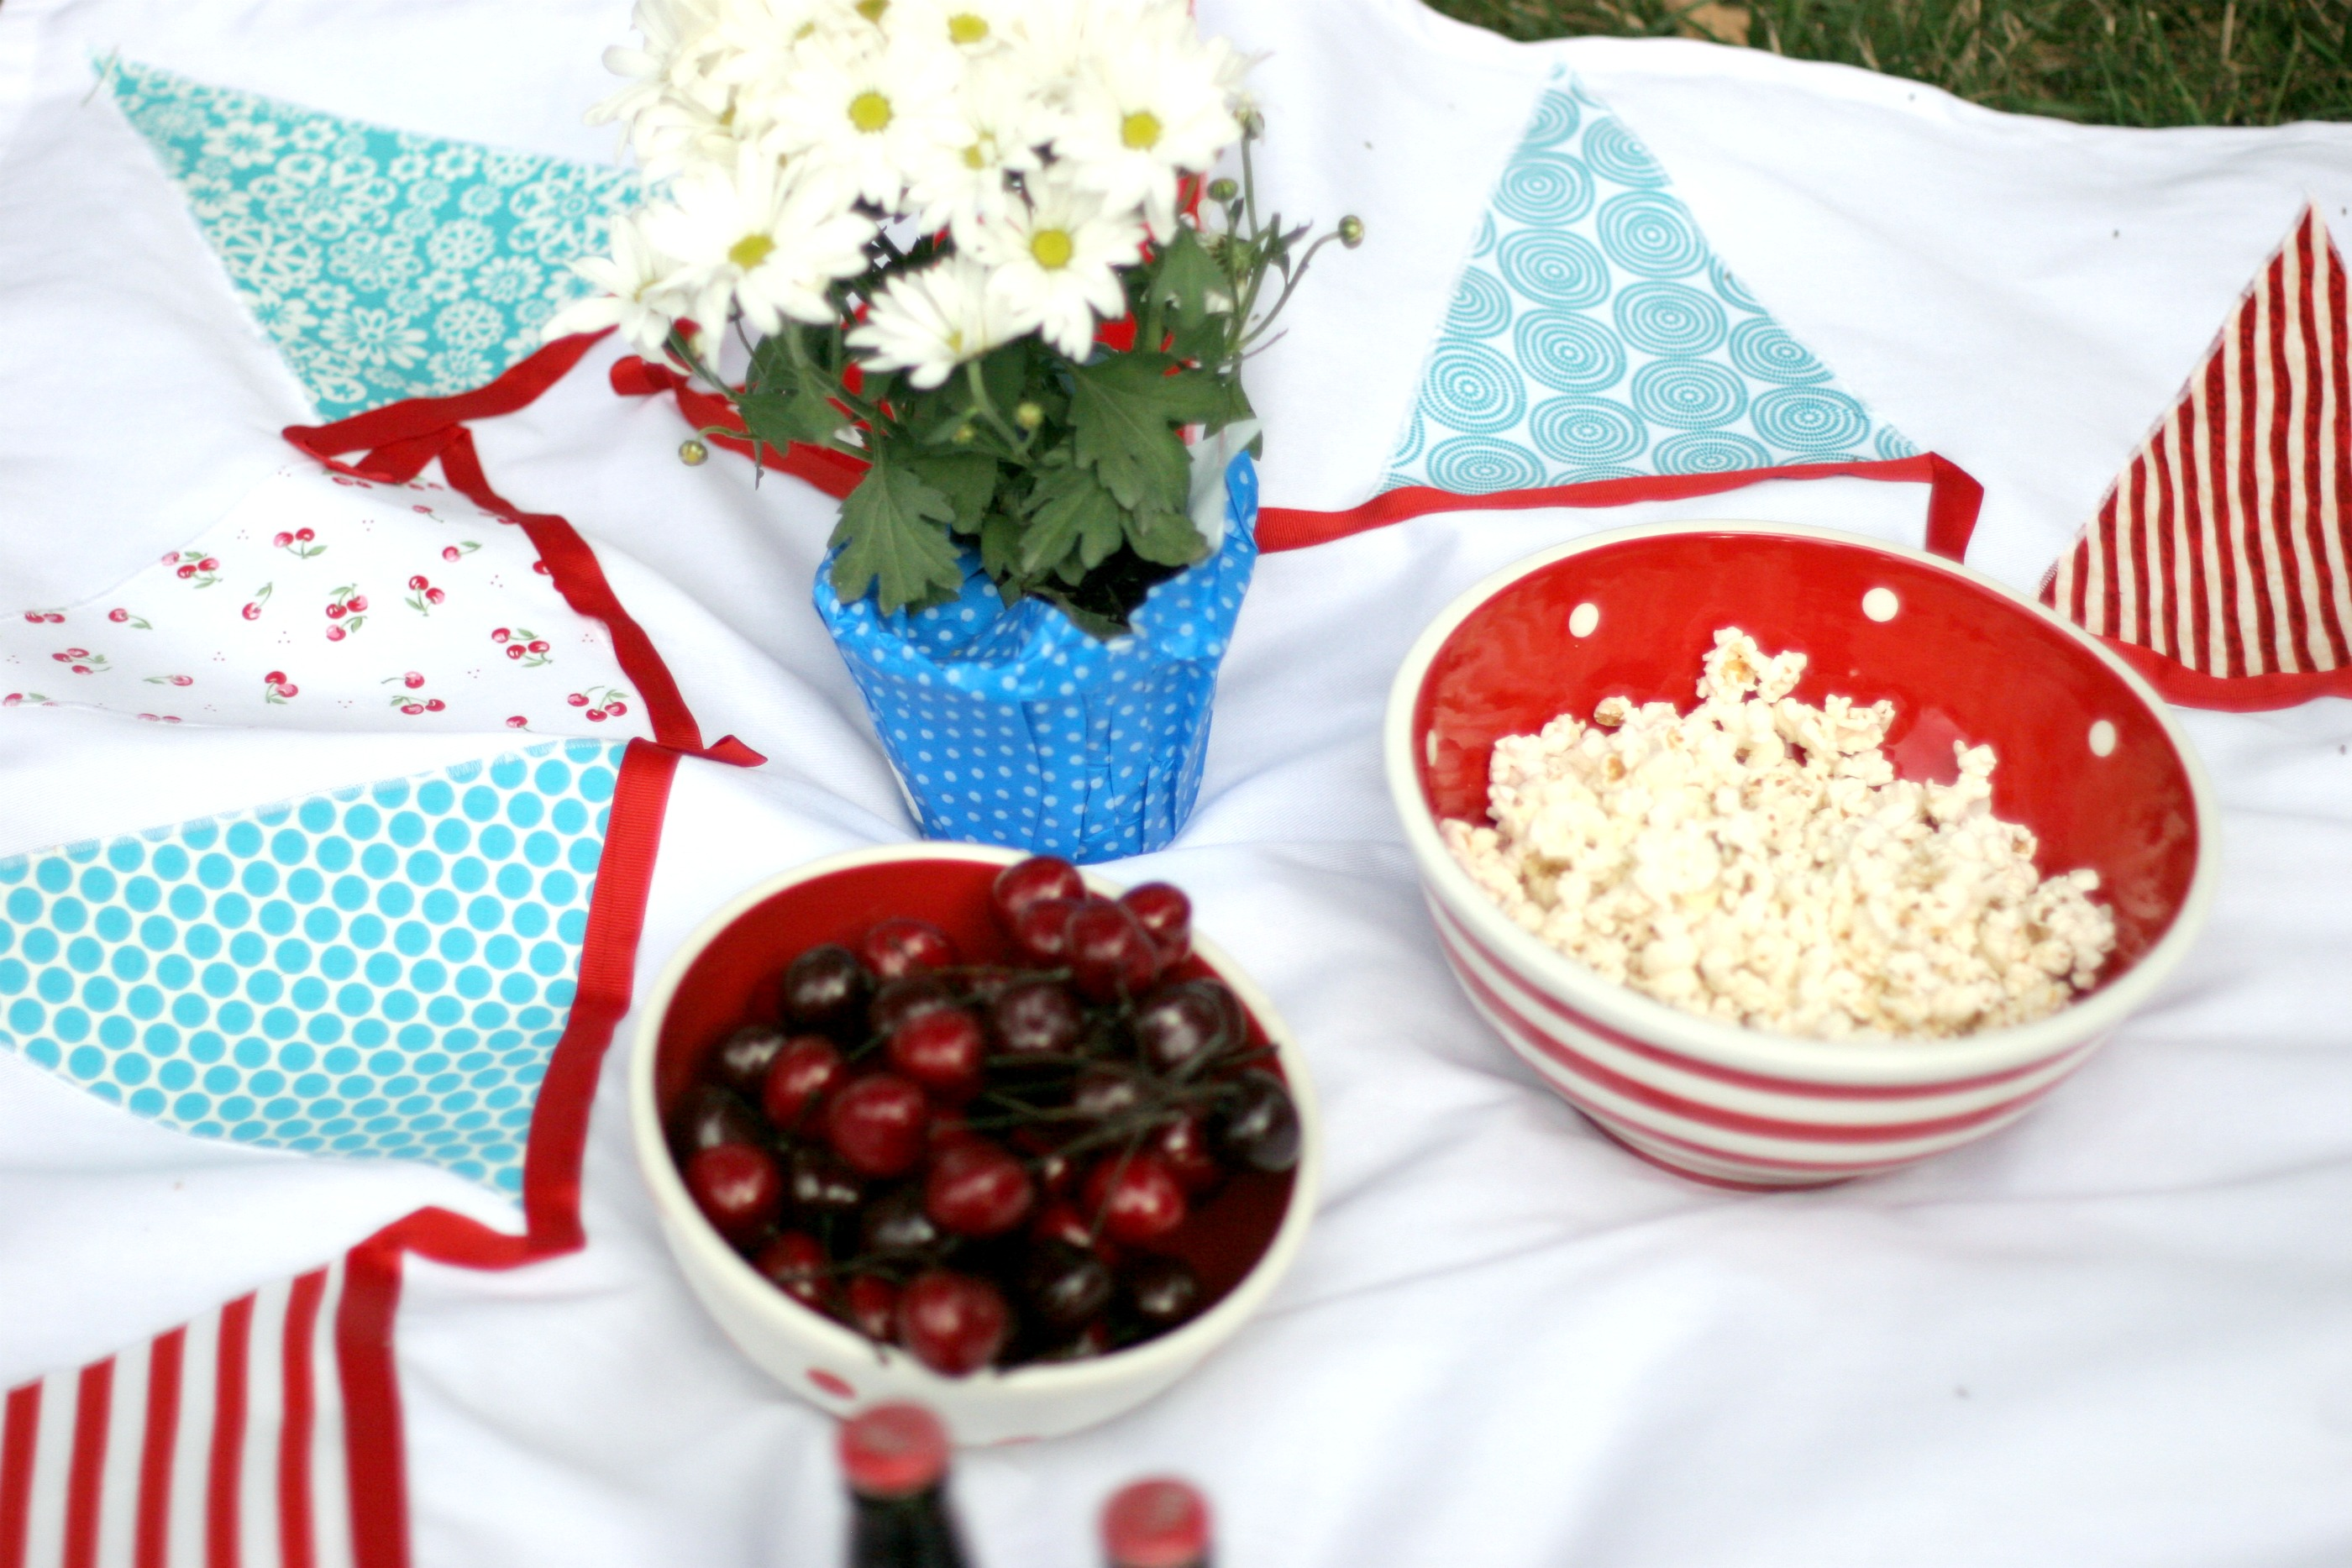 DIY-252520Bunting-252520Tablecloth-252520Blanket-25255B3-25255D